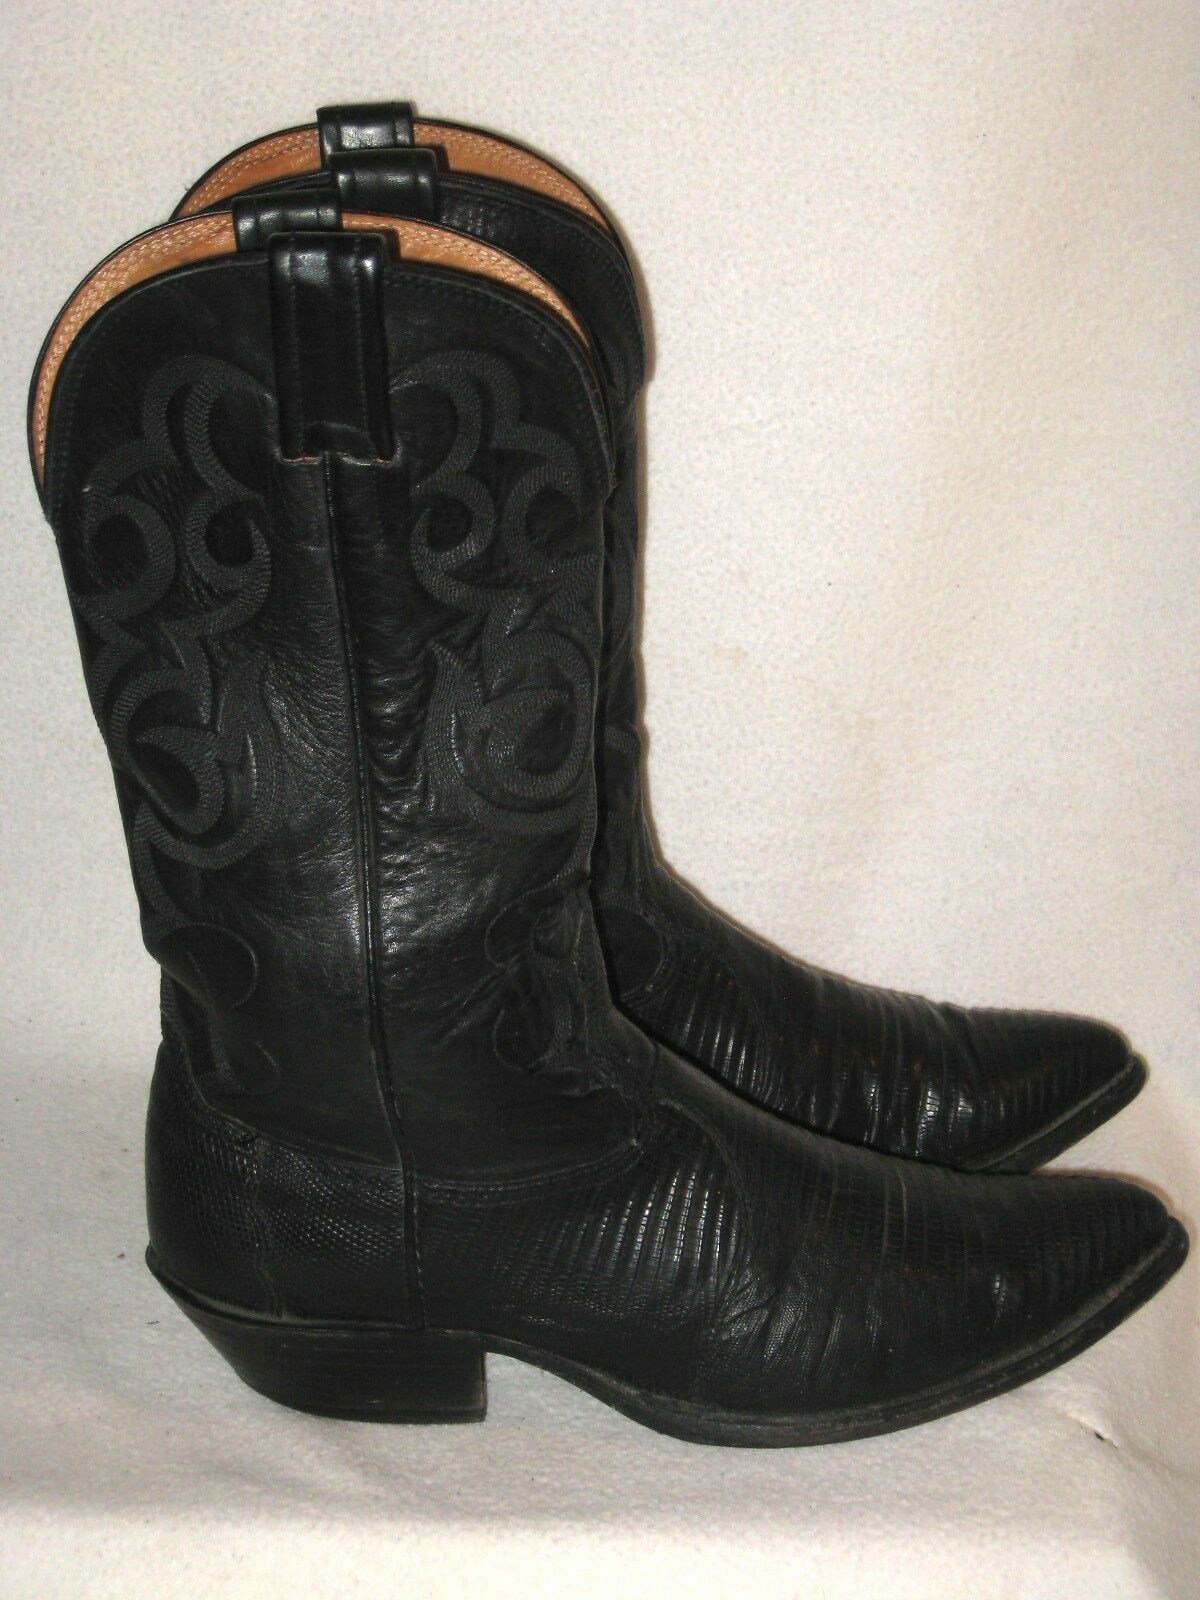 MEN'S NOCONA LIZARD/ LEATHER WESTERN BLACK COWBOY BOOTS made in USA SZ 9 D